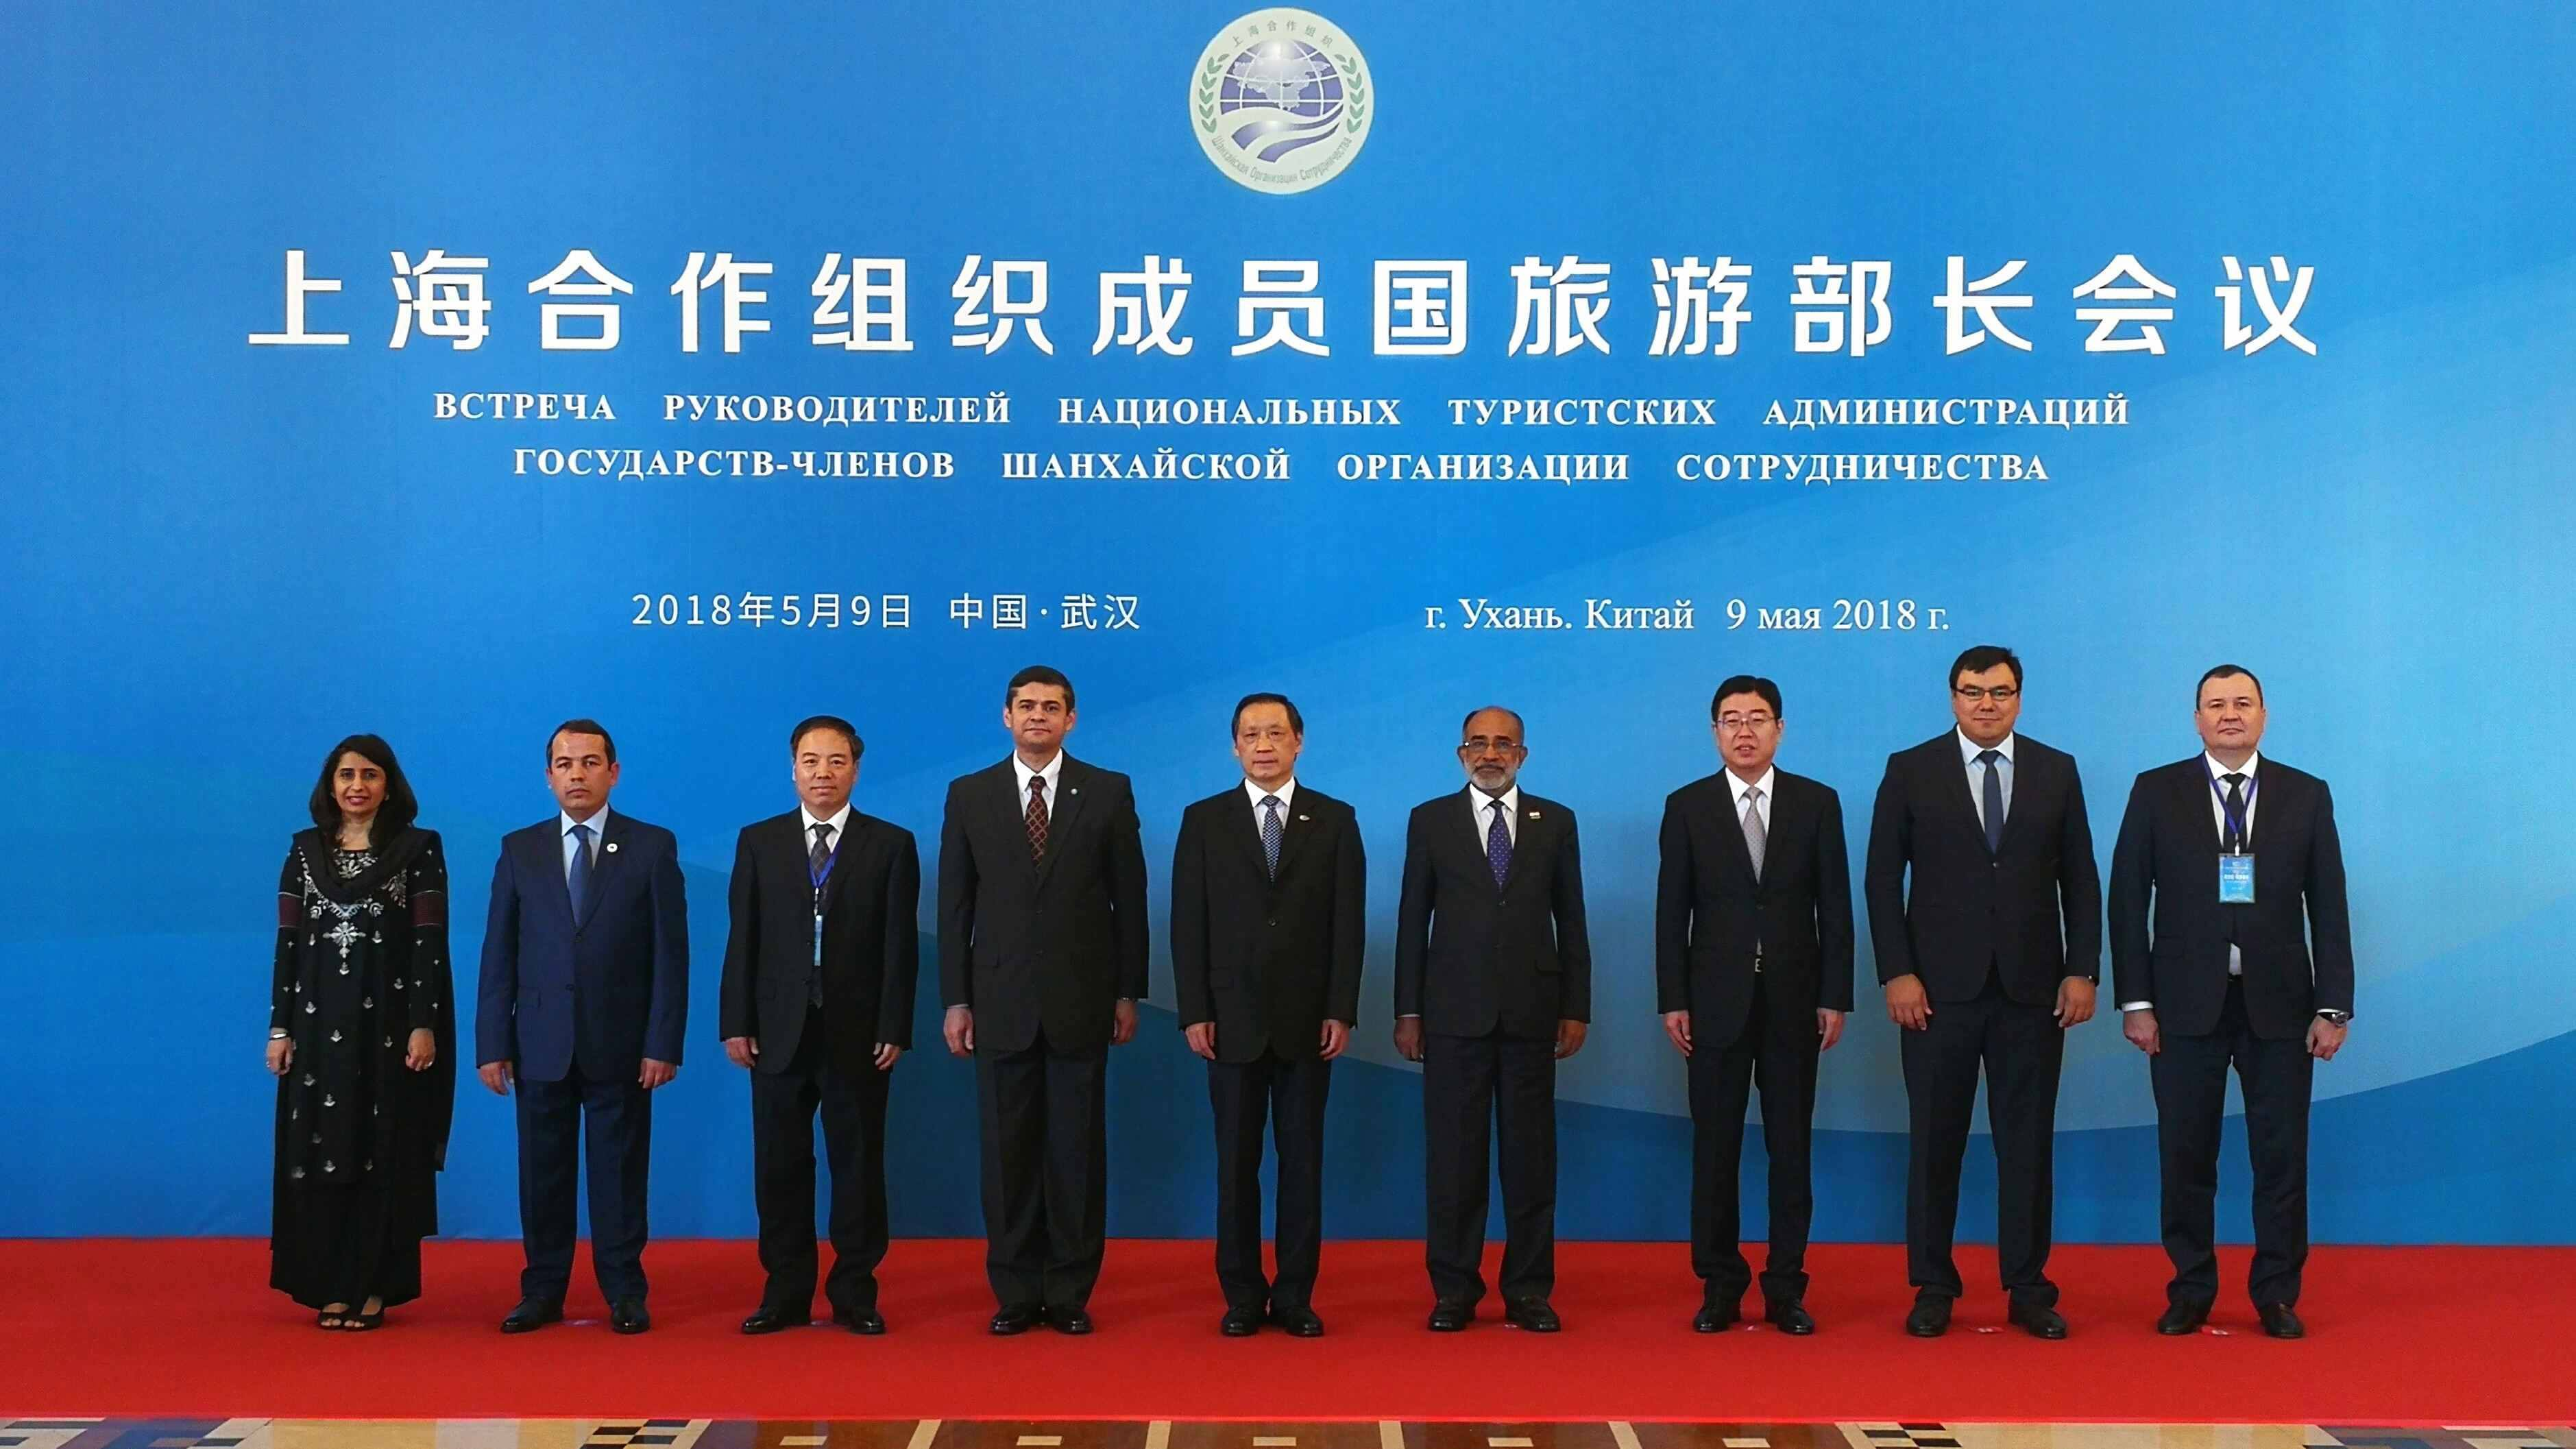 First SCO tourism ministerial meeting held in Wuhan, China